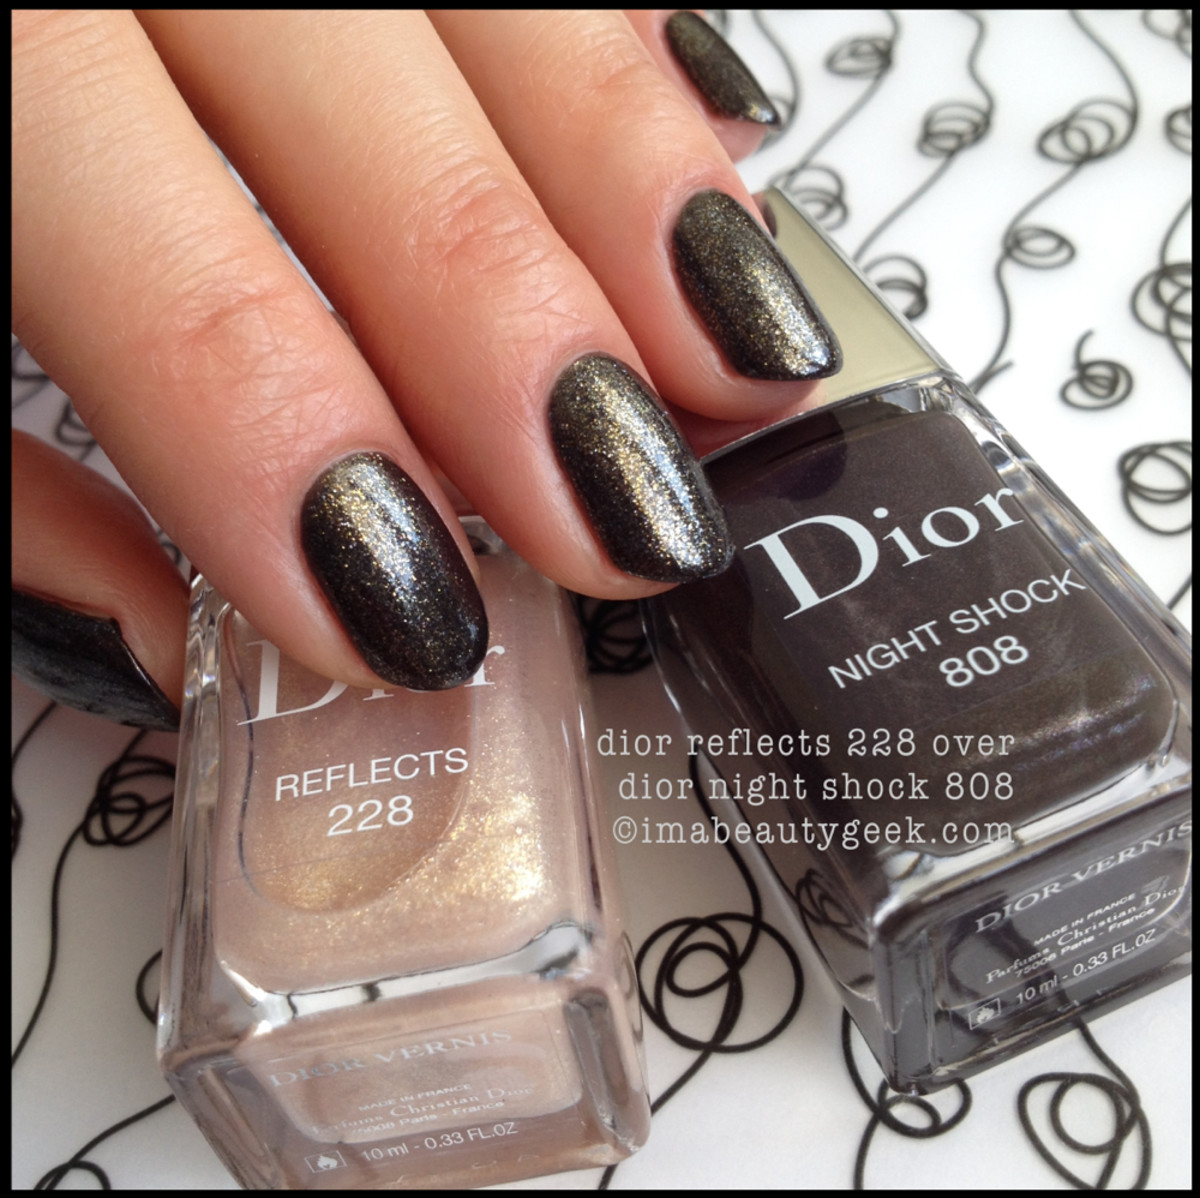 Dior Vernis Reflects 228 over Night Shock 808